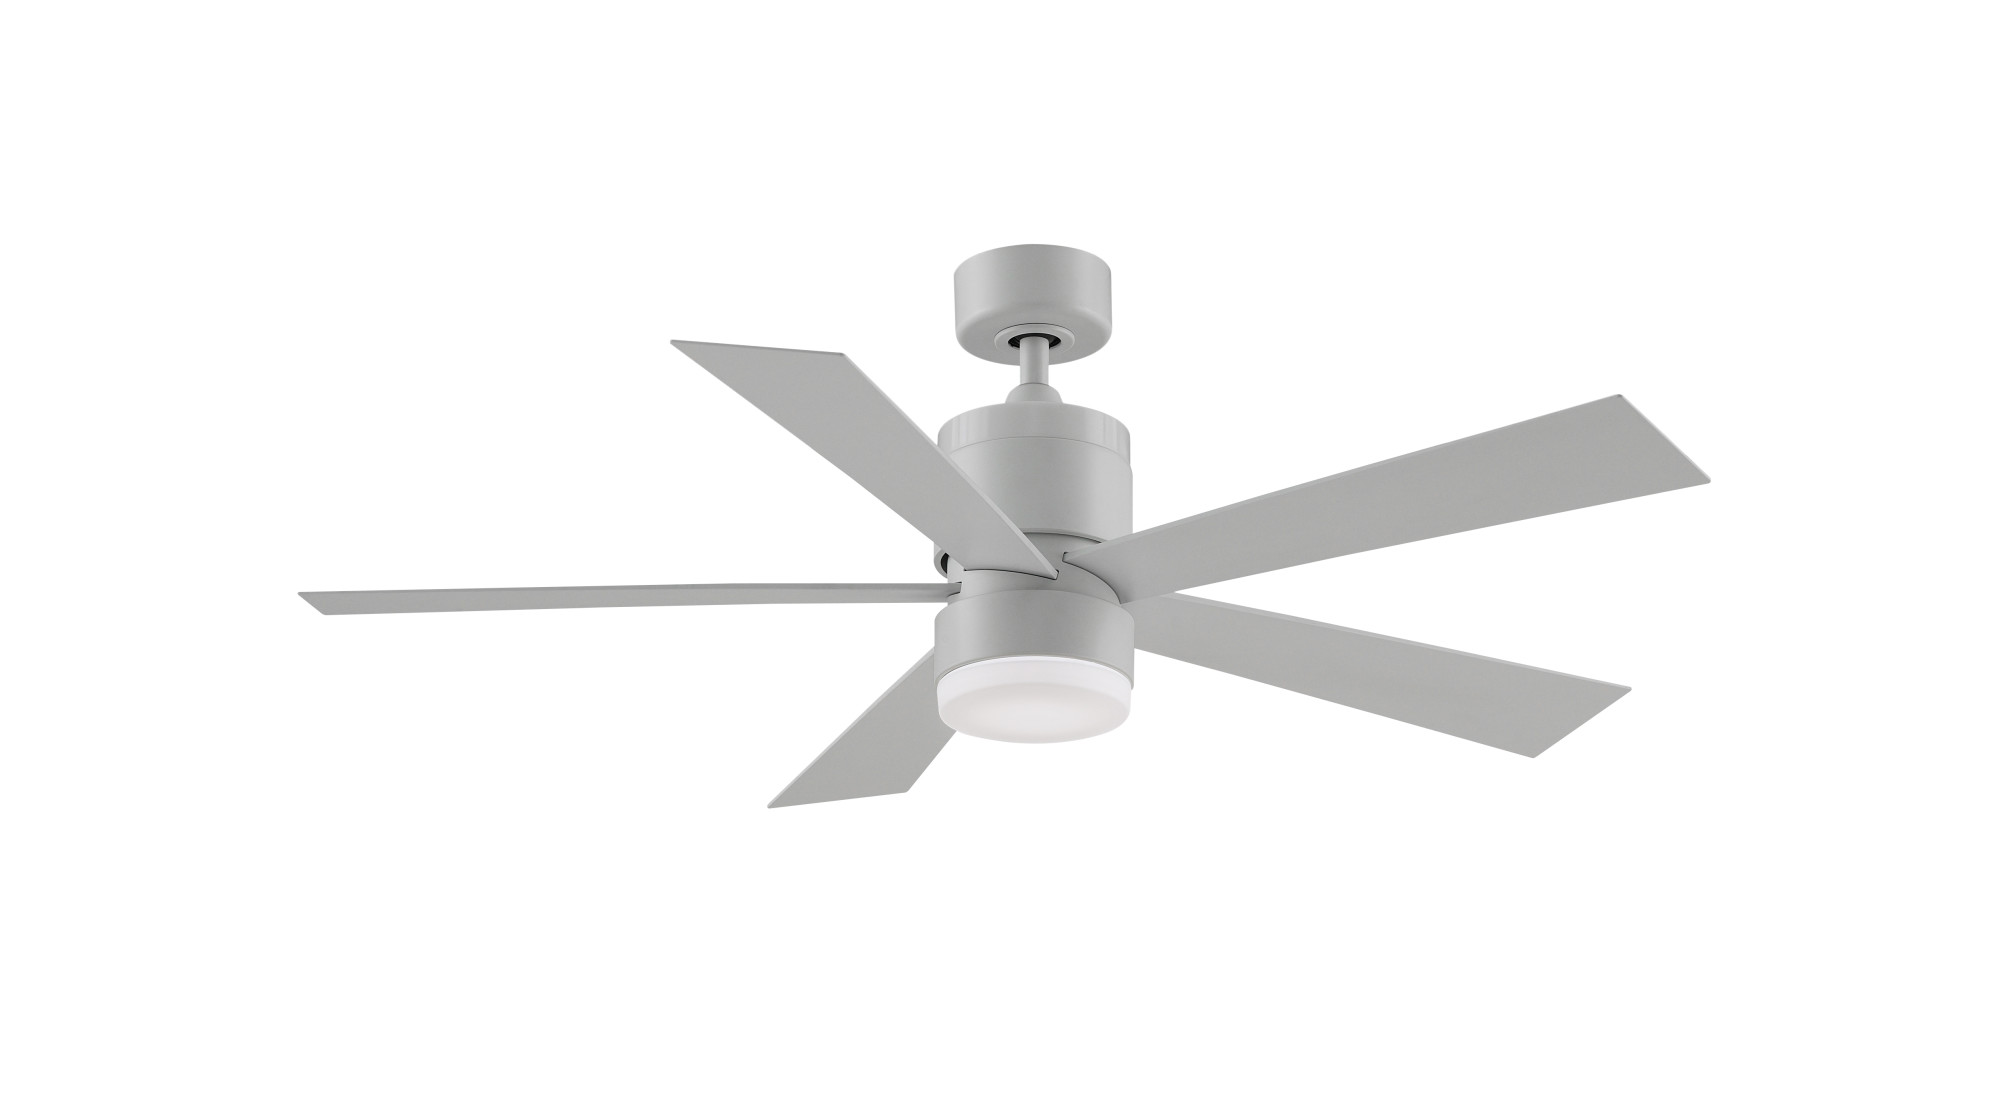 Fanimation Fp8458 Torch 52 5 Blade Indoor Ceiling Fan Light Kit And Remote In